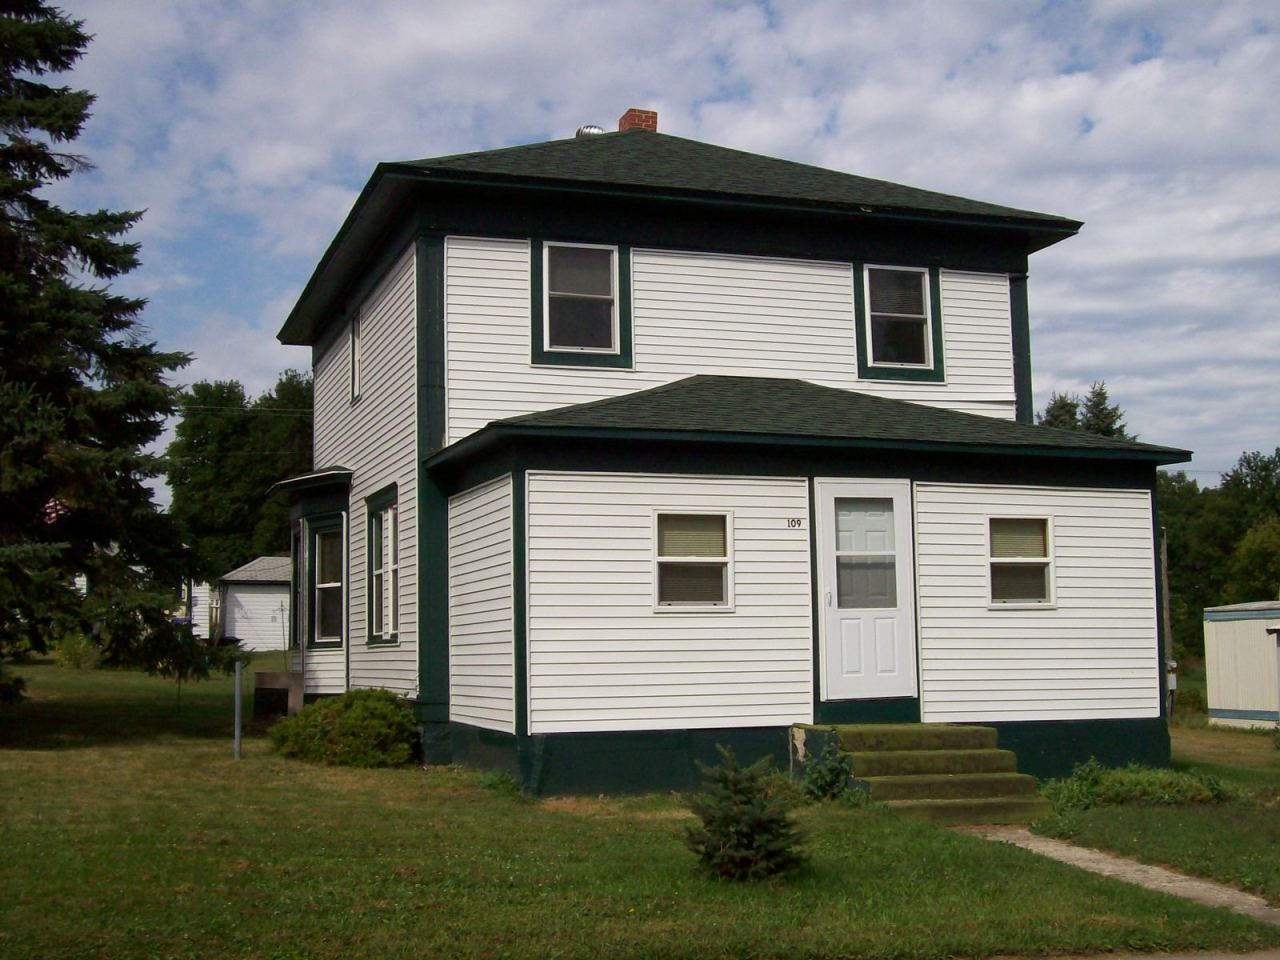 109 Main St, South Shore, SD 57263